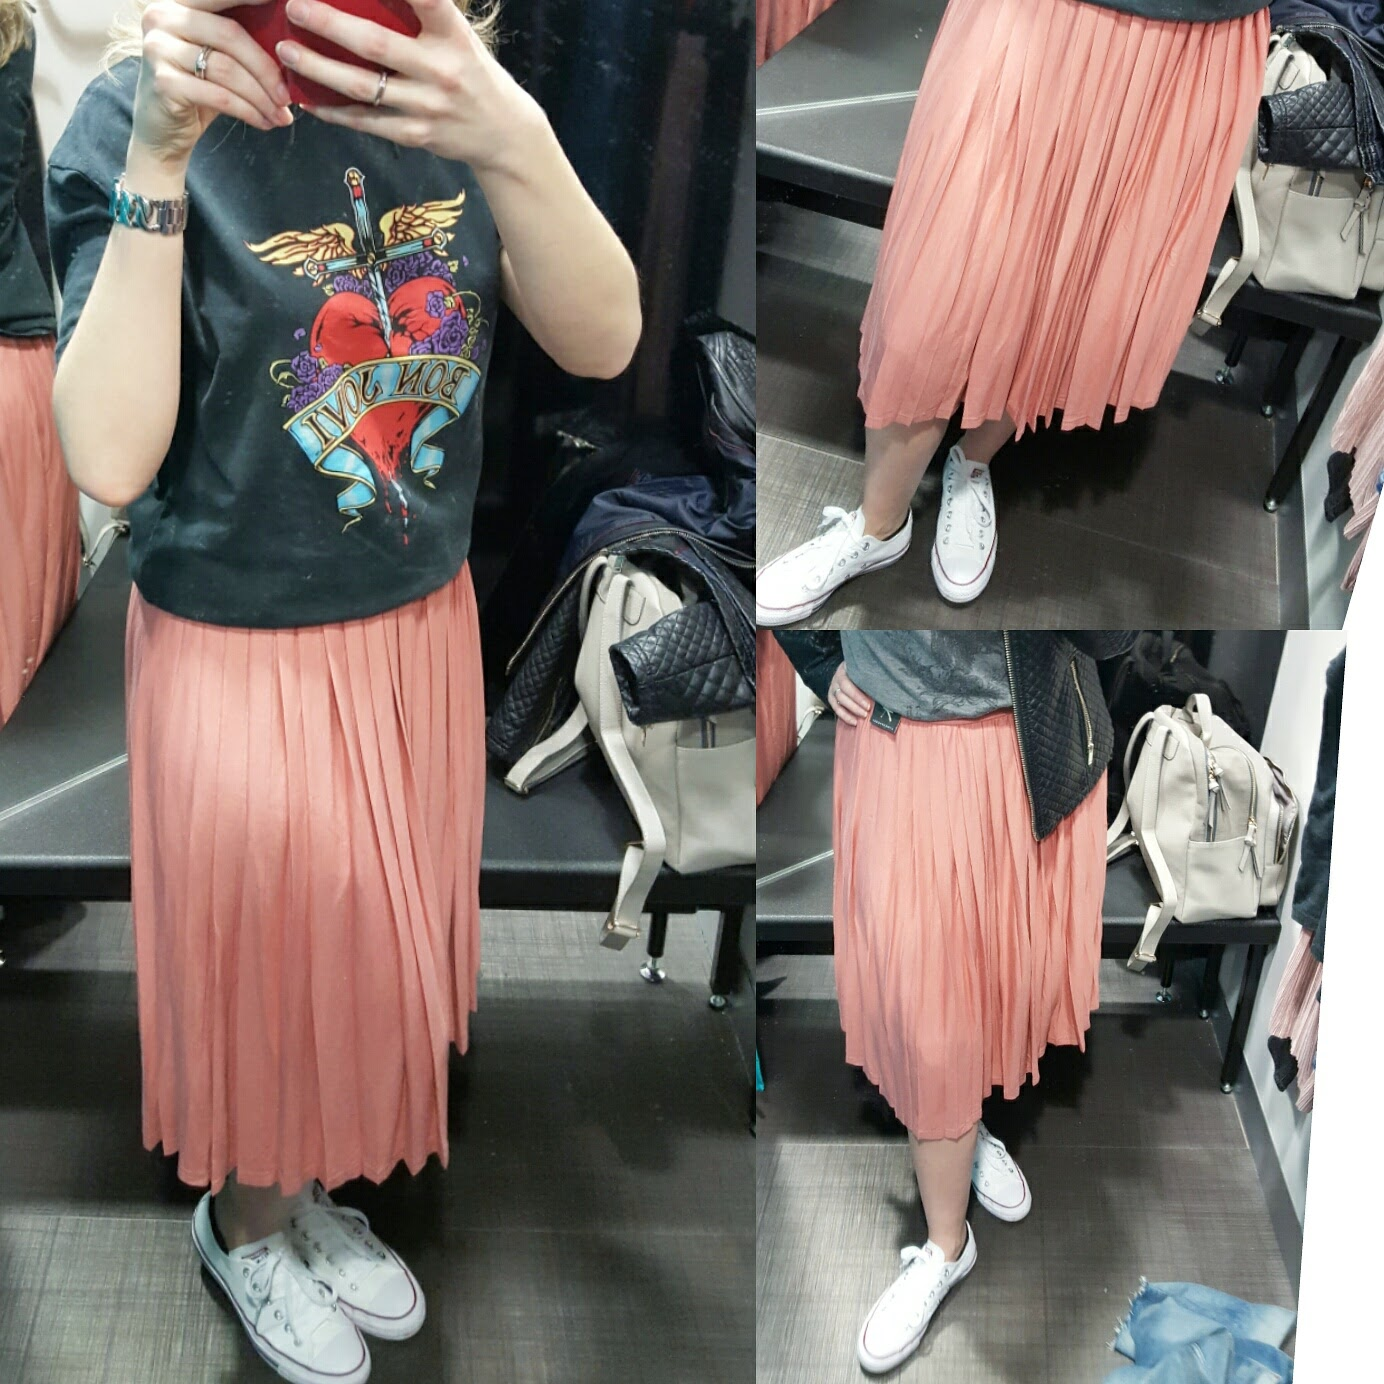 Primark BonJovi T-shirt and pleated skirt